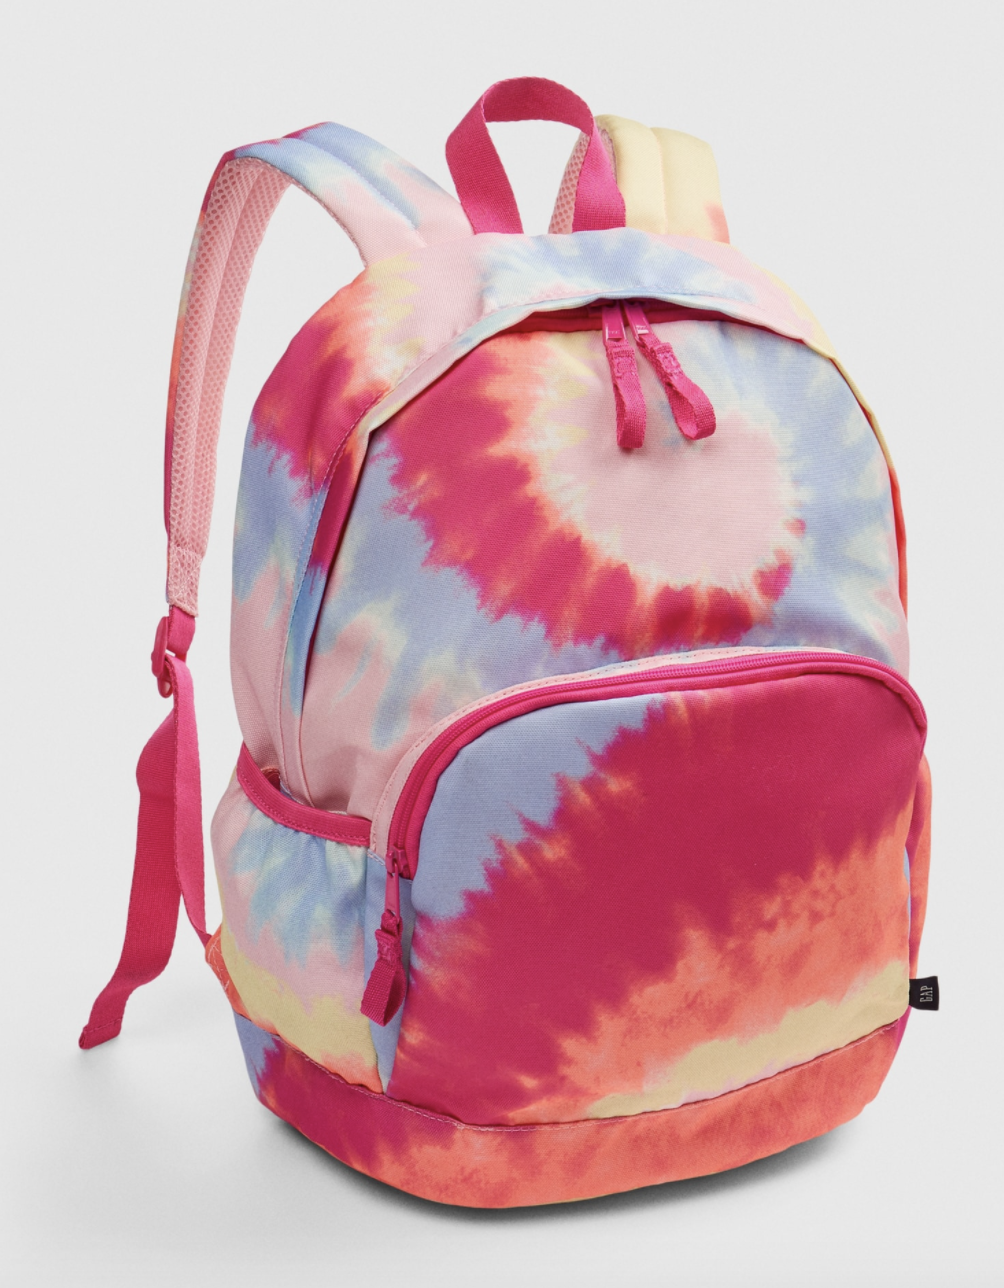 Product shot of tie-dye backpack with swirls of various colors